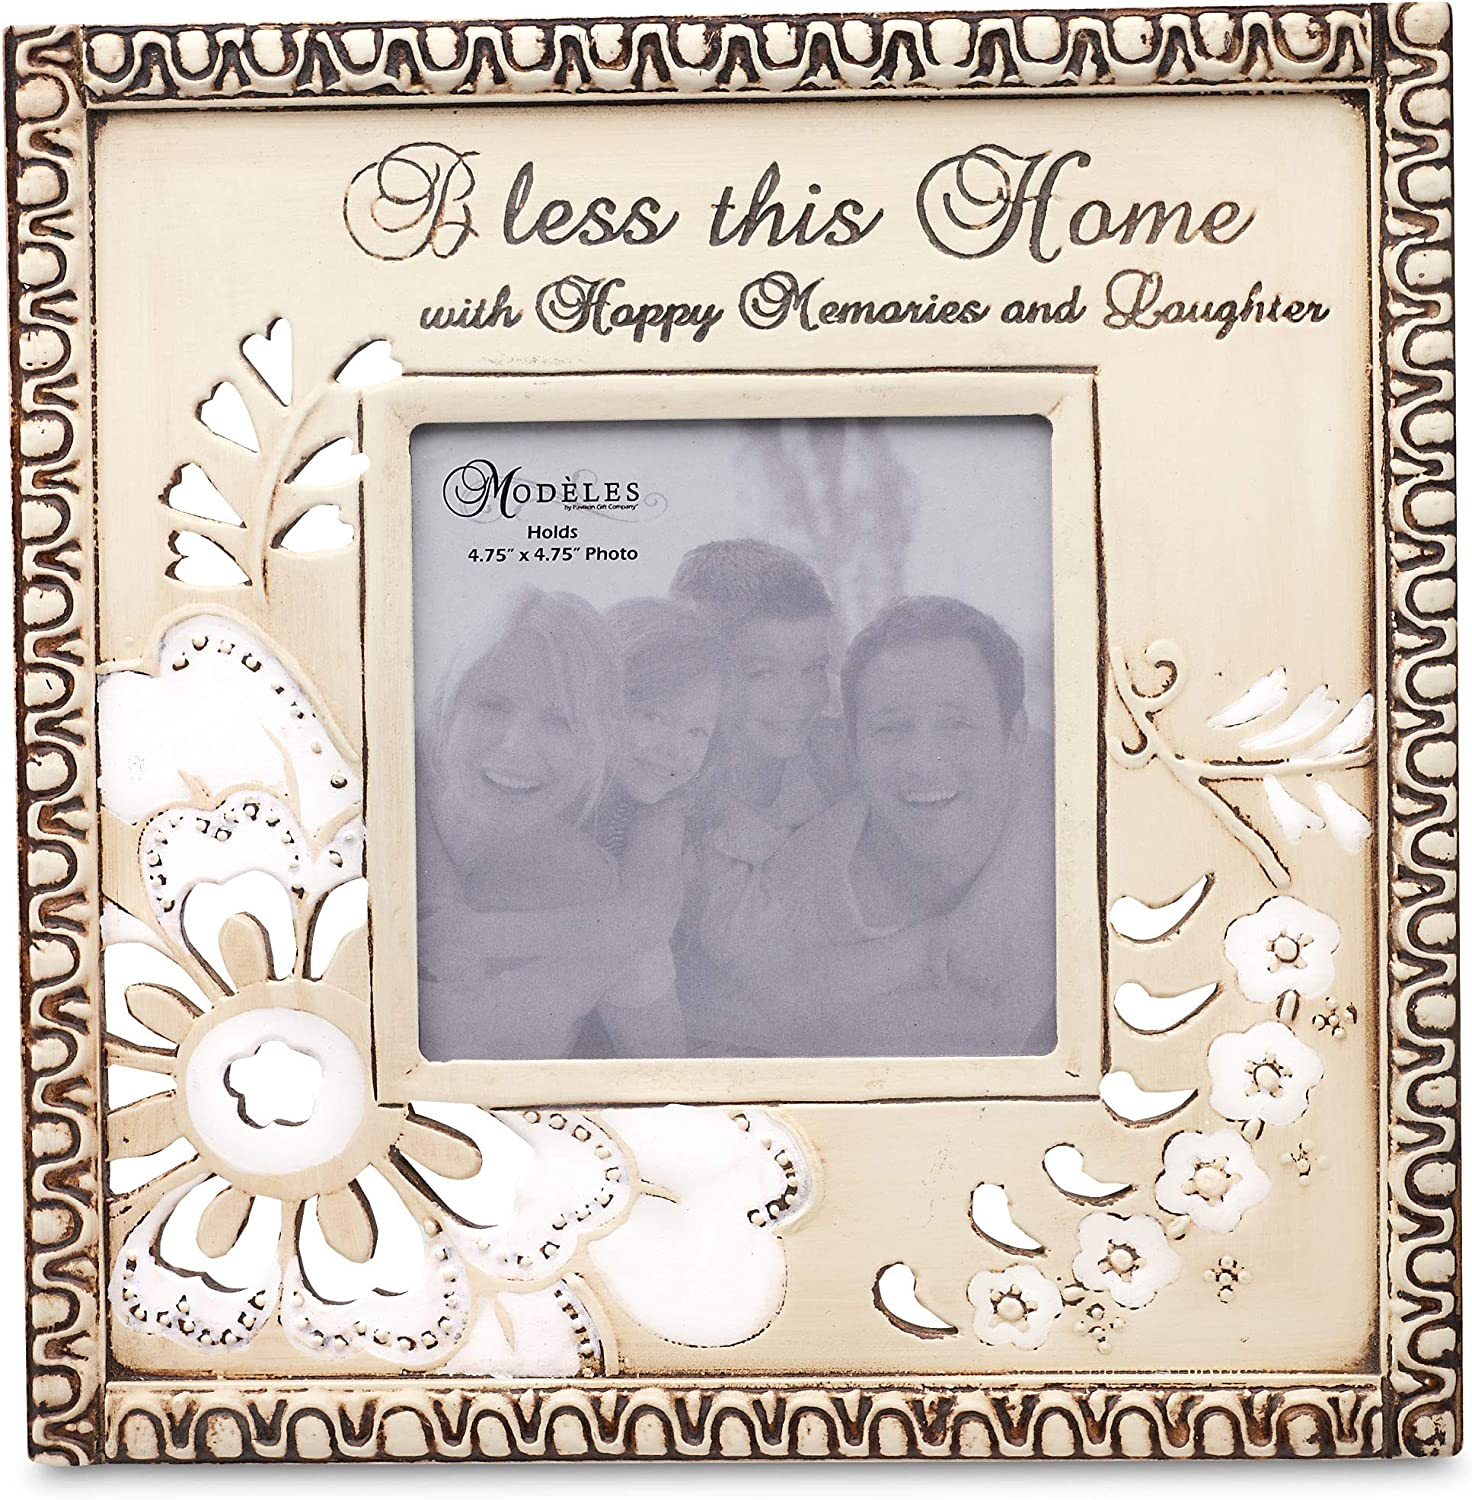 Pavilion Gift Company Modeles 88026, 9.5-Inch X 9.5-Inch Photo Frame, Holds 4.75-Inch X 4.75-Inch Photo, Bless This Home Sentiment